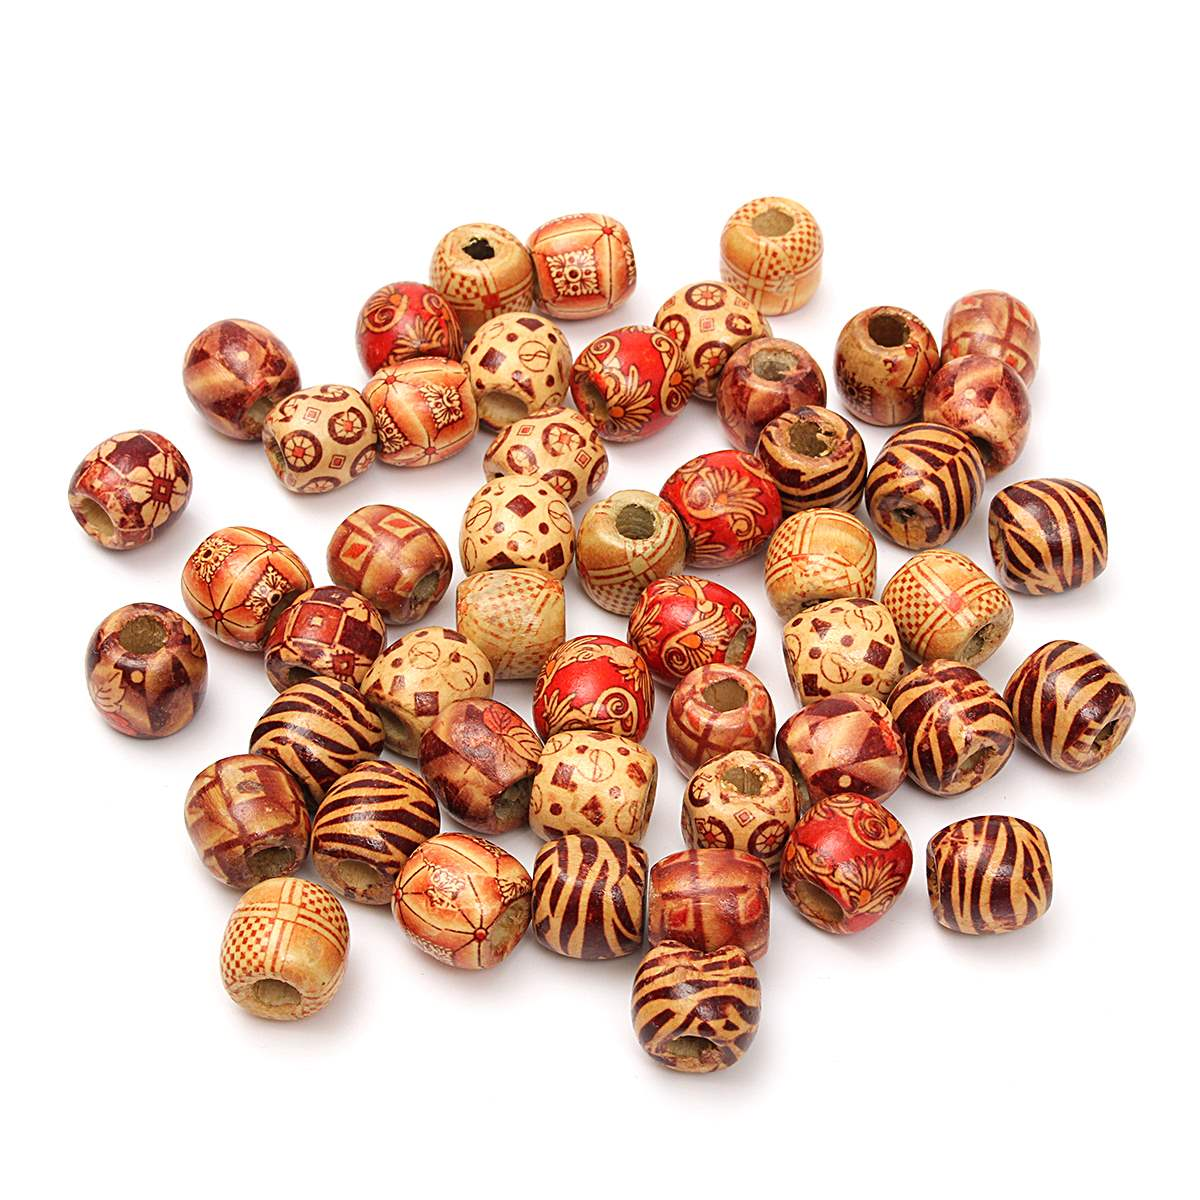 50Pcs Dreadlock Beads Dreads Wood Wooden Hair Bead Braided Ring Tube Cuff Clips For Braids Hairstyle Hair Extensions Accessories